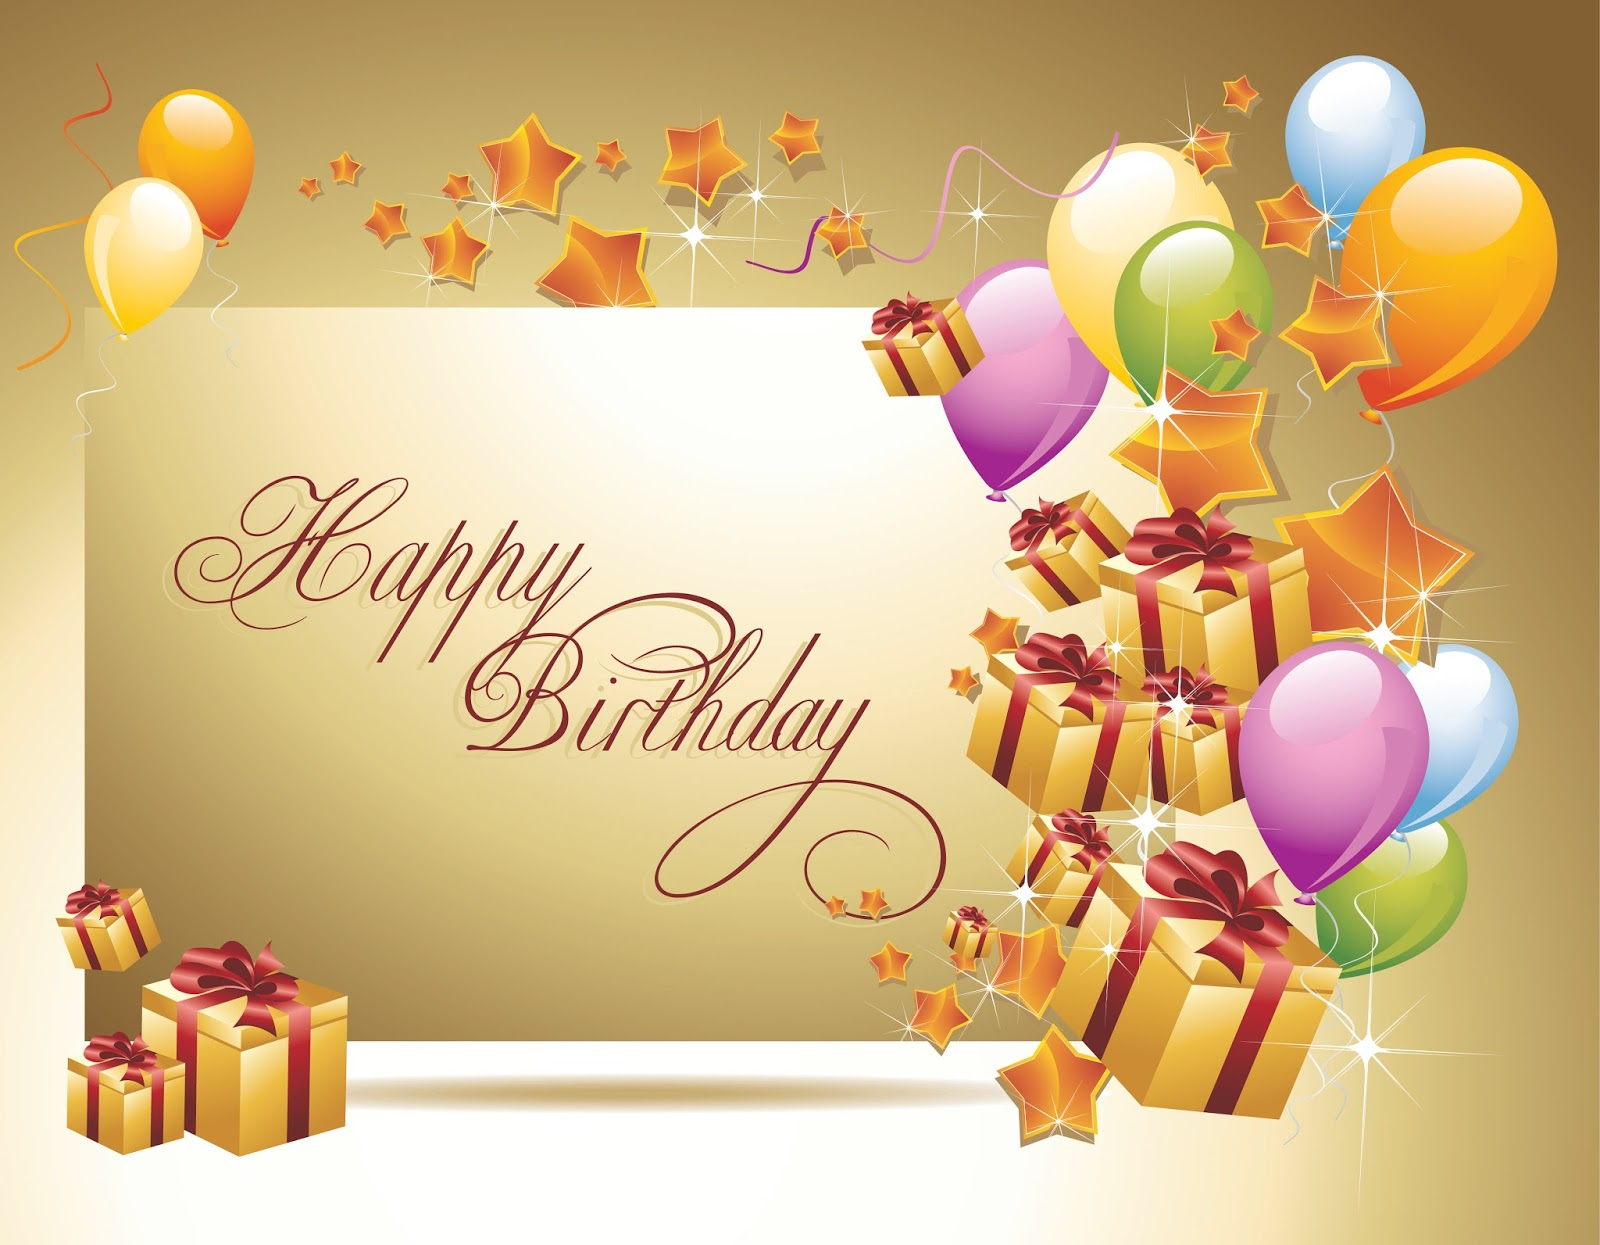 50 Birthday Wishes And Messages With Images Quotes Good Happy Birthday Wish To